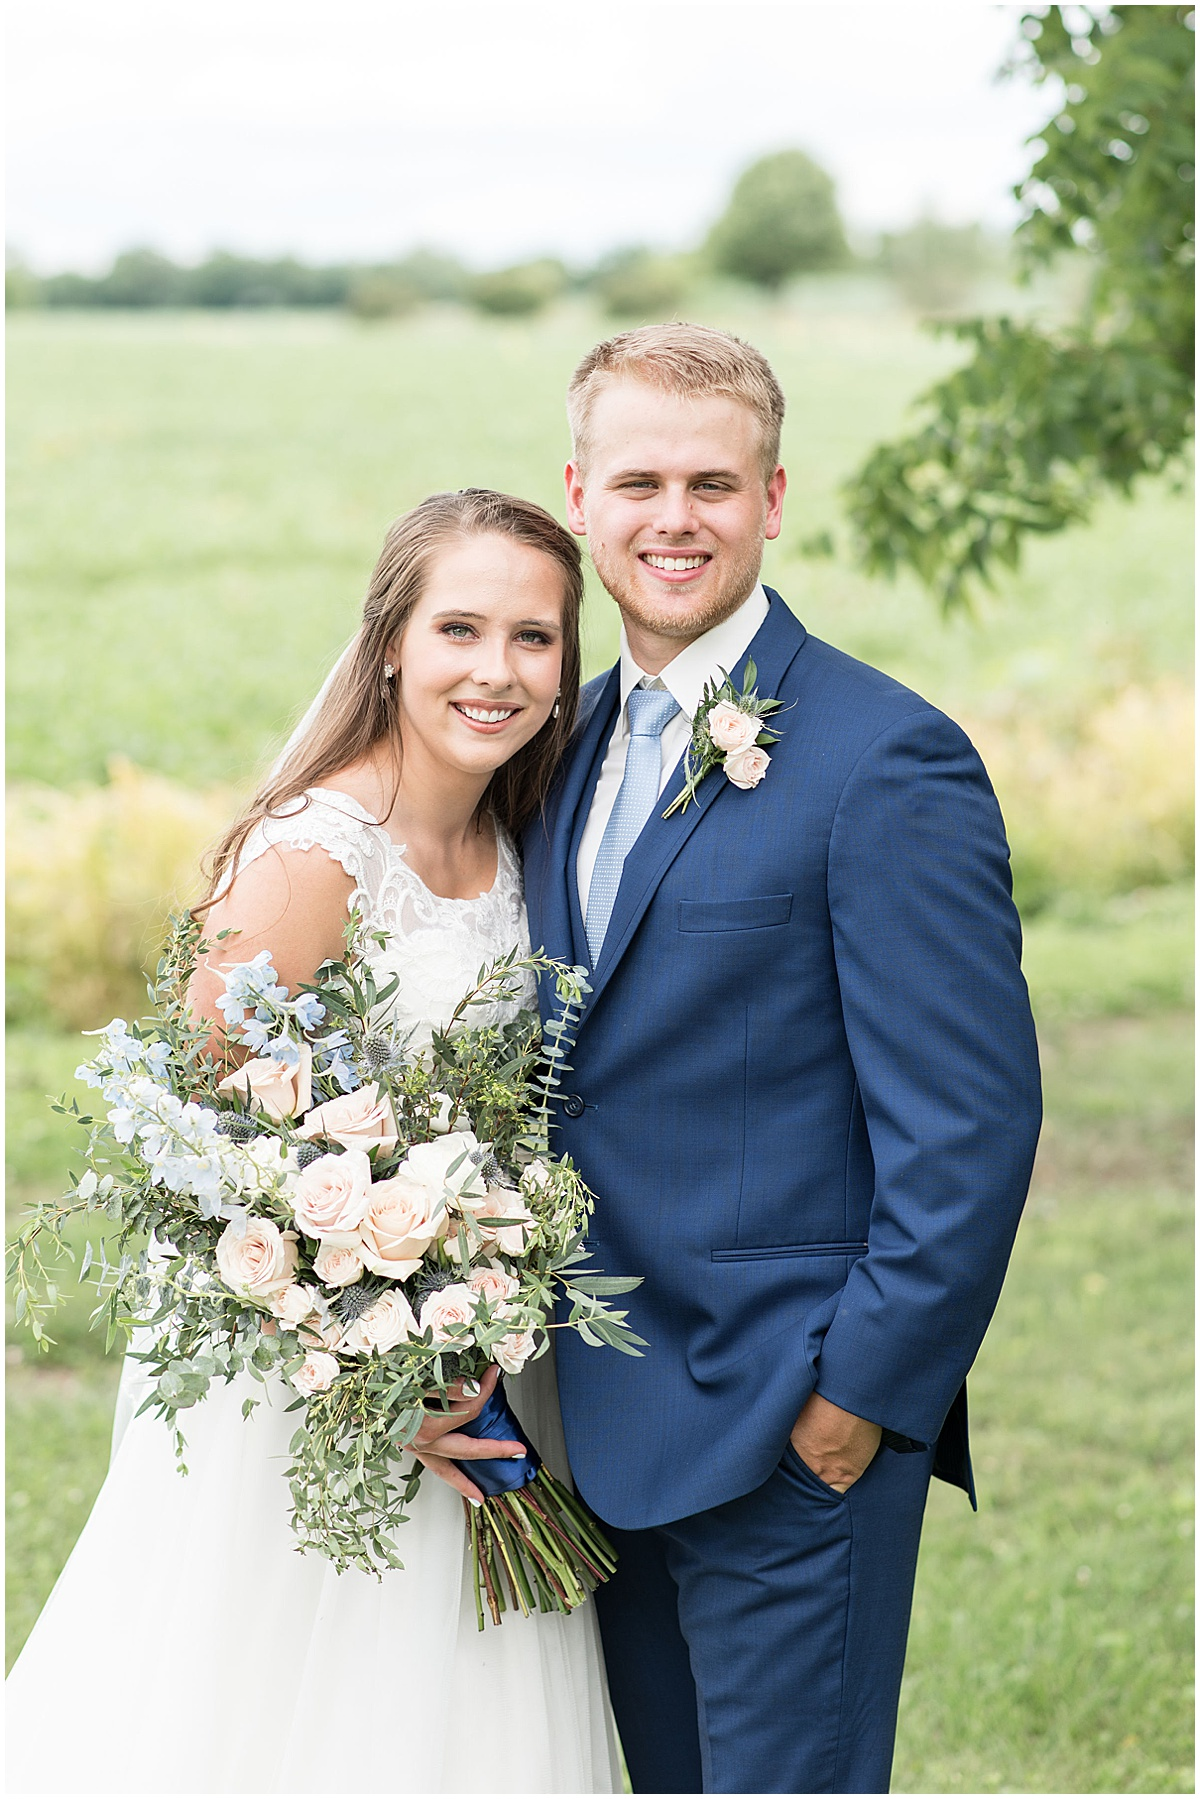 Bride and groom portrait at The Blessing Barn in Lafayette, Indiana by Victoria Rayburn Photography